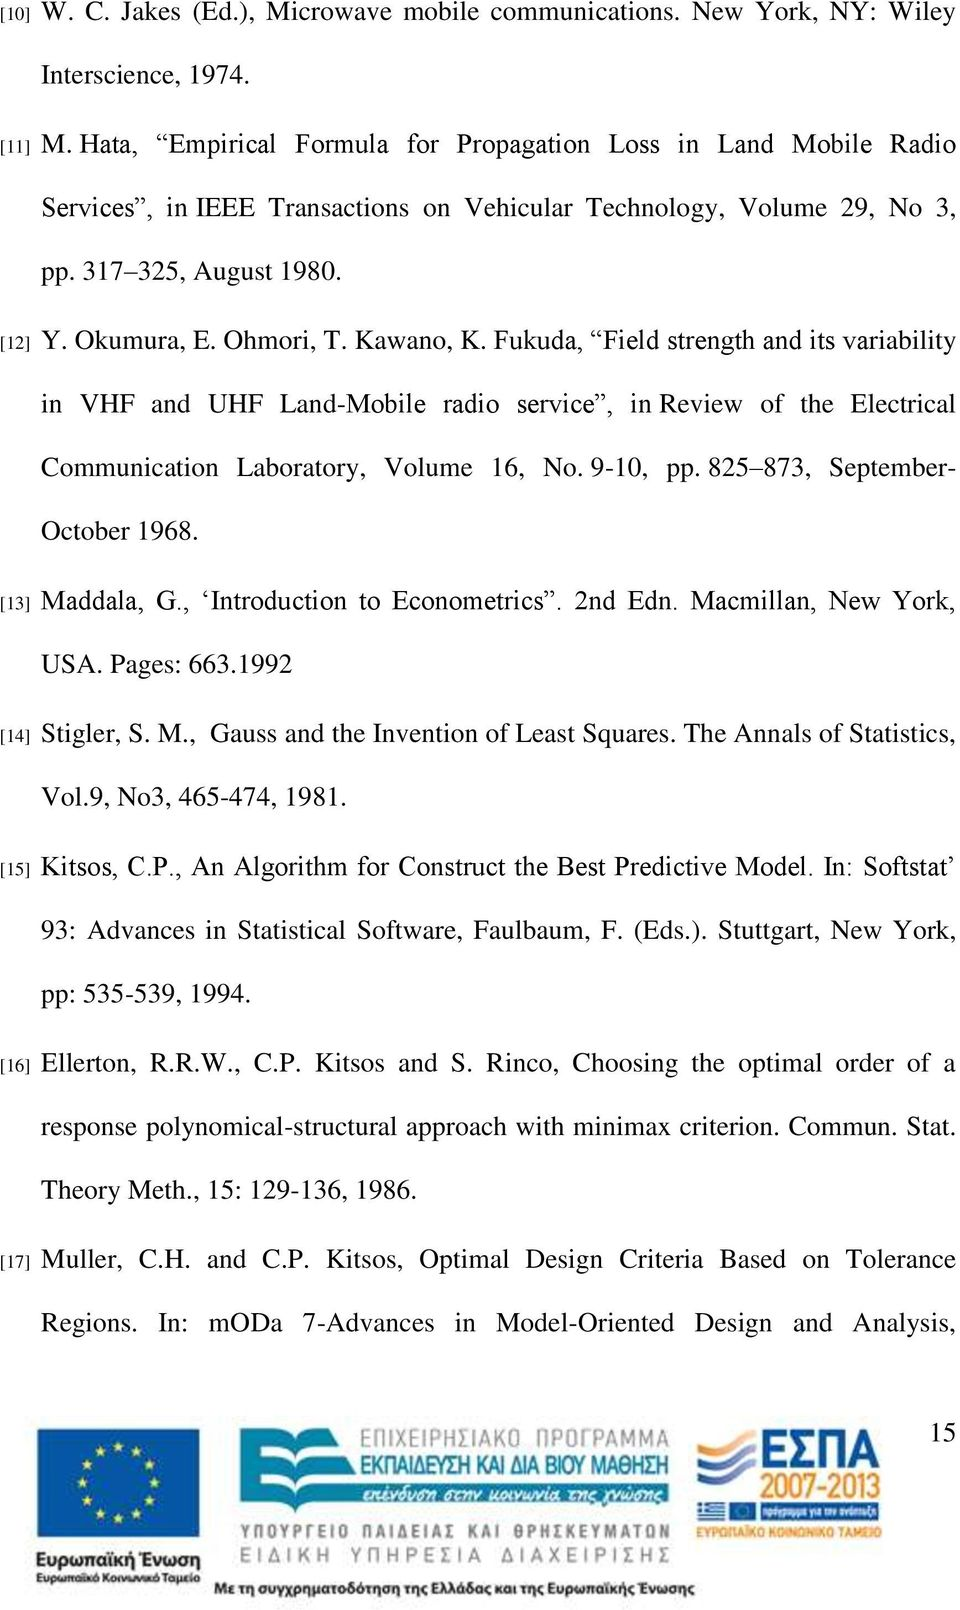 Kawano, K. Fukuda, Field strength and its variability in VHF and UHF Land-Mobile radio service, in Review of the Electrical Communication Laboratory, Volume 16, No. 9-10, pp.